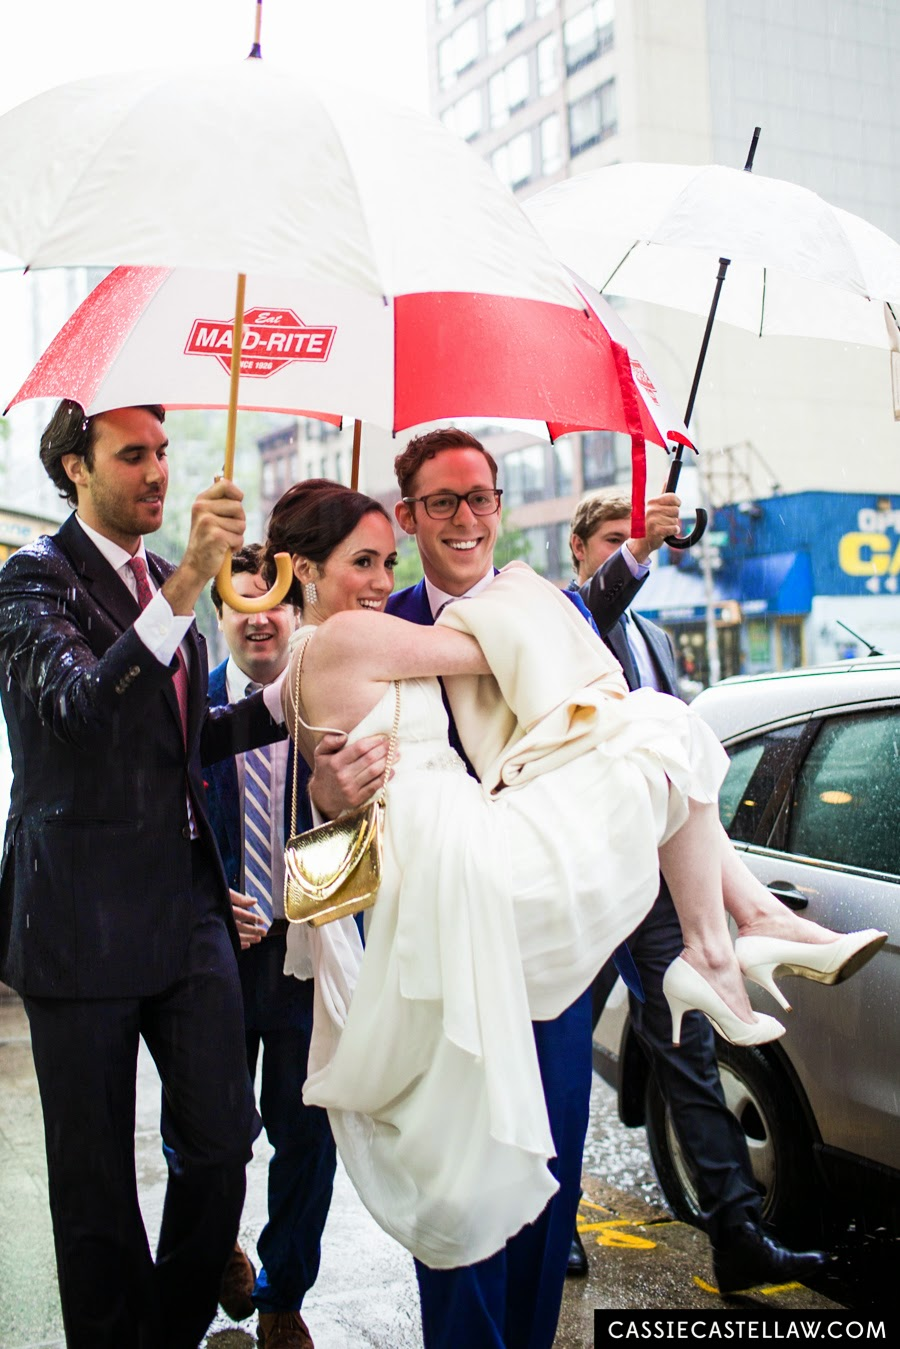 Bridal party with umbrellas sheilding groom carrying bride in the pouring rain on their wedding day. NYC Lifestyle wedding photography by Cassie Castellaw. www.cassiecastellaw.com